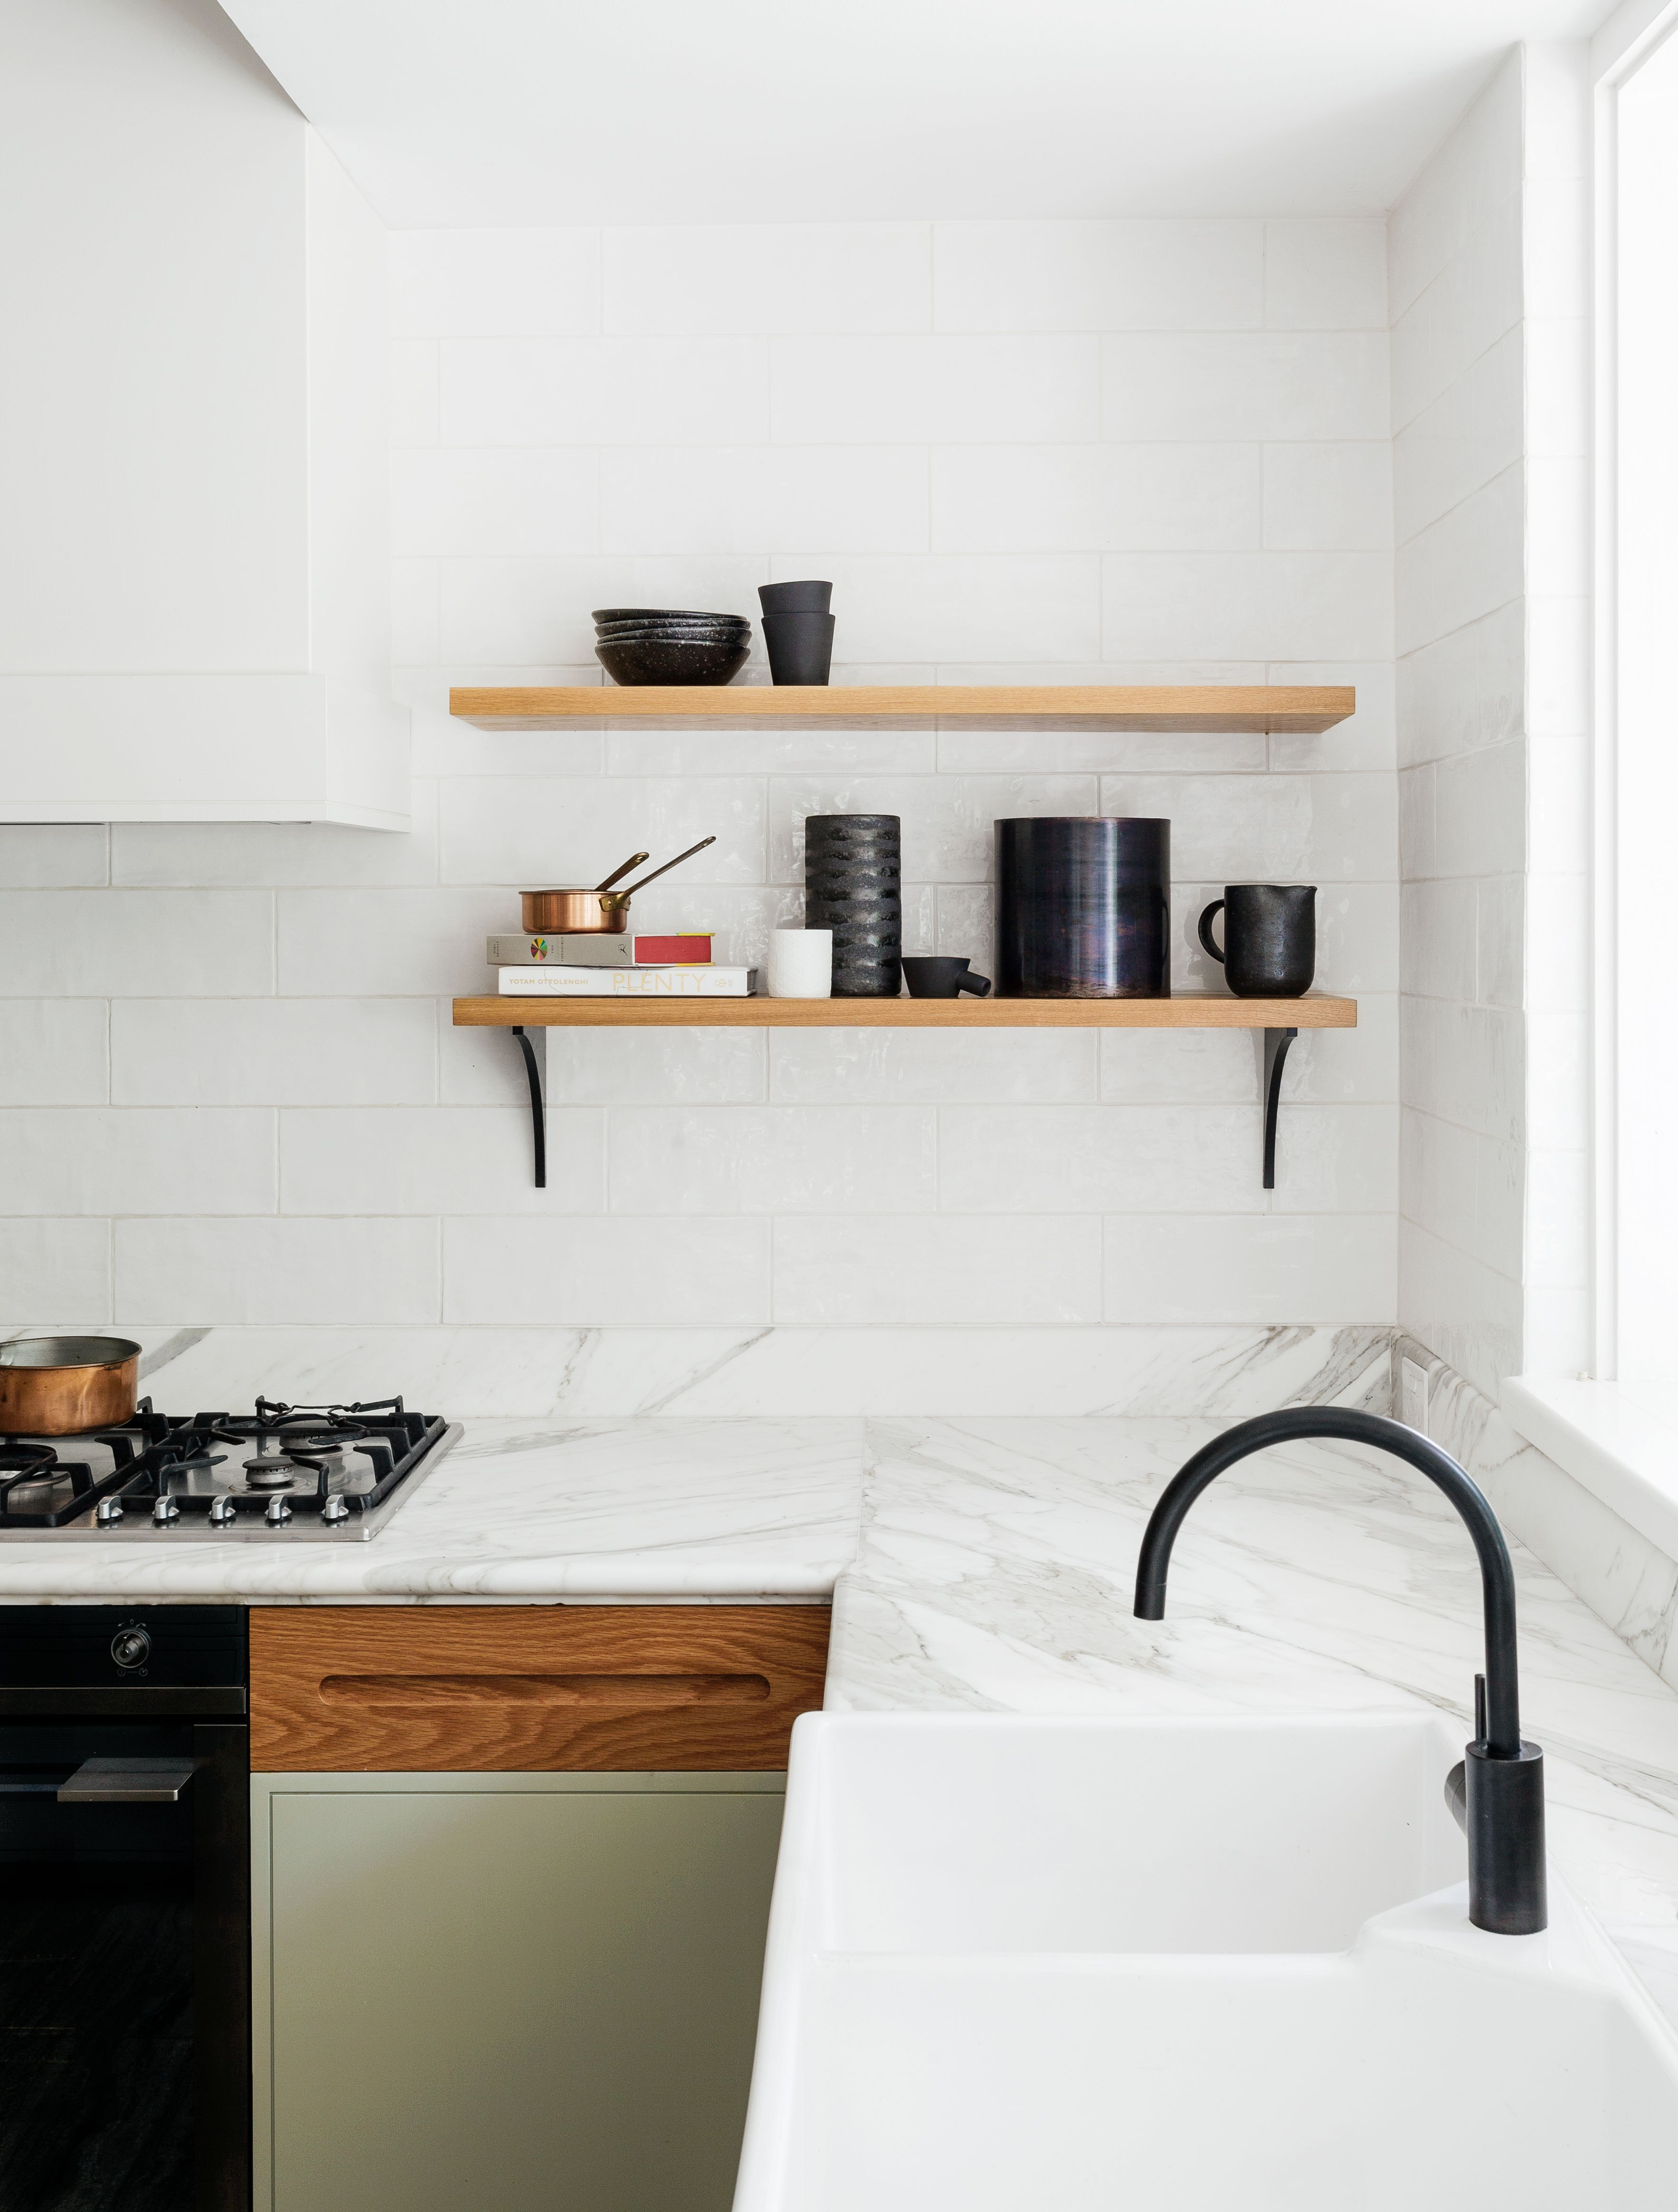 Kitchen of the week a beforeafter remodel in sydney australia a clean and fresh looking kitchen remodel with calacatta marble counters handmade subway tiles dailygadgetfo Choice Image